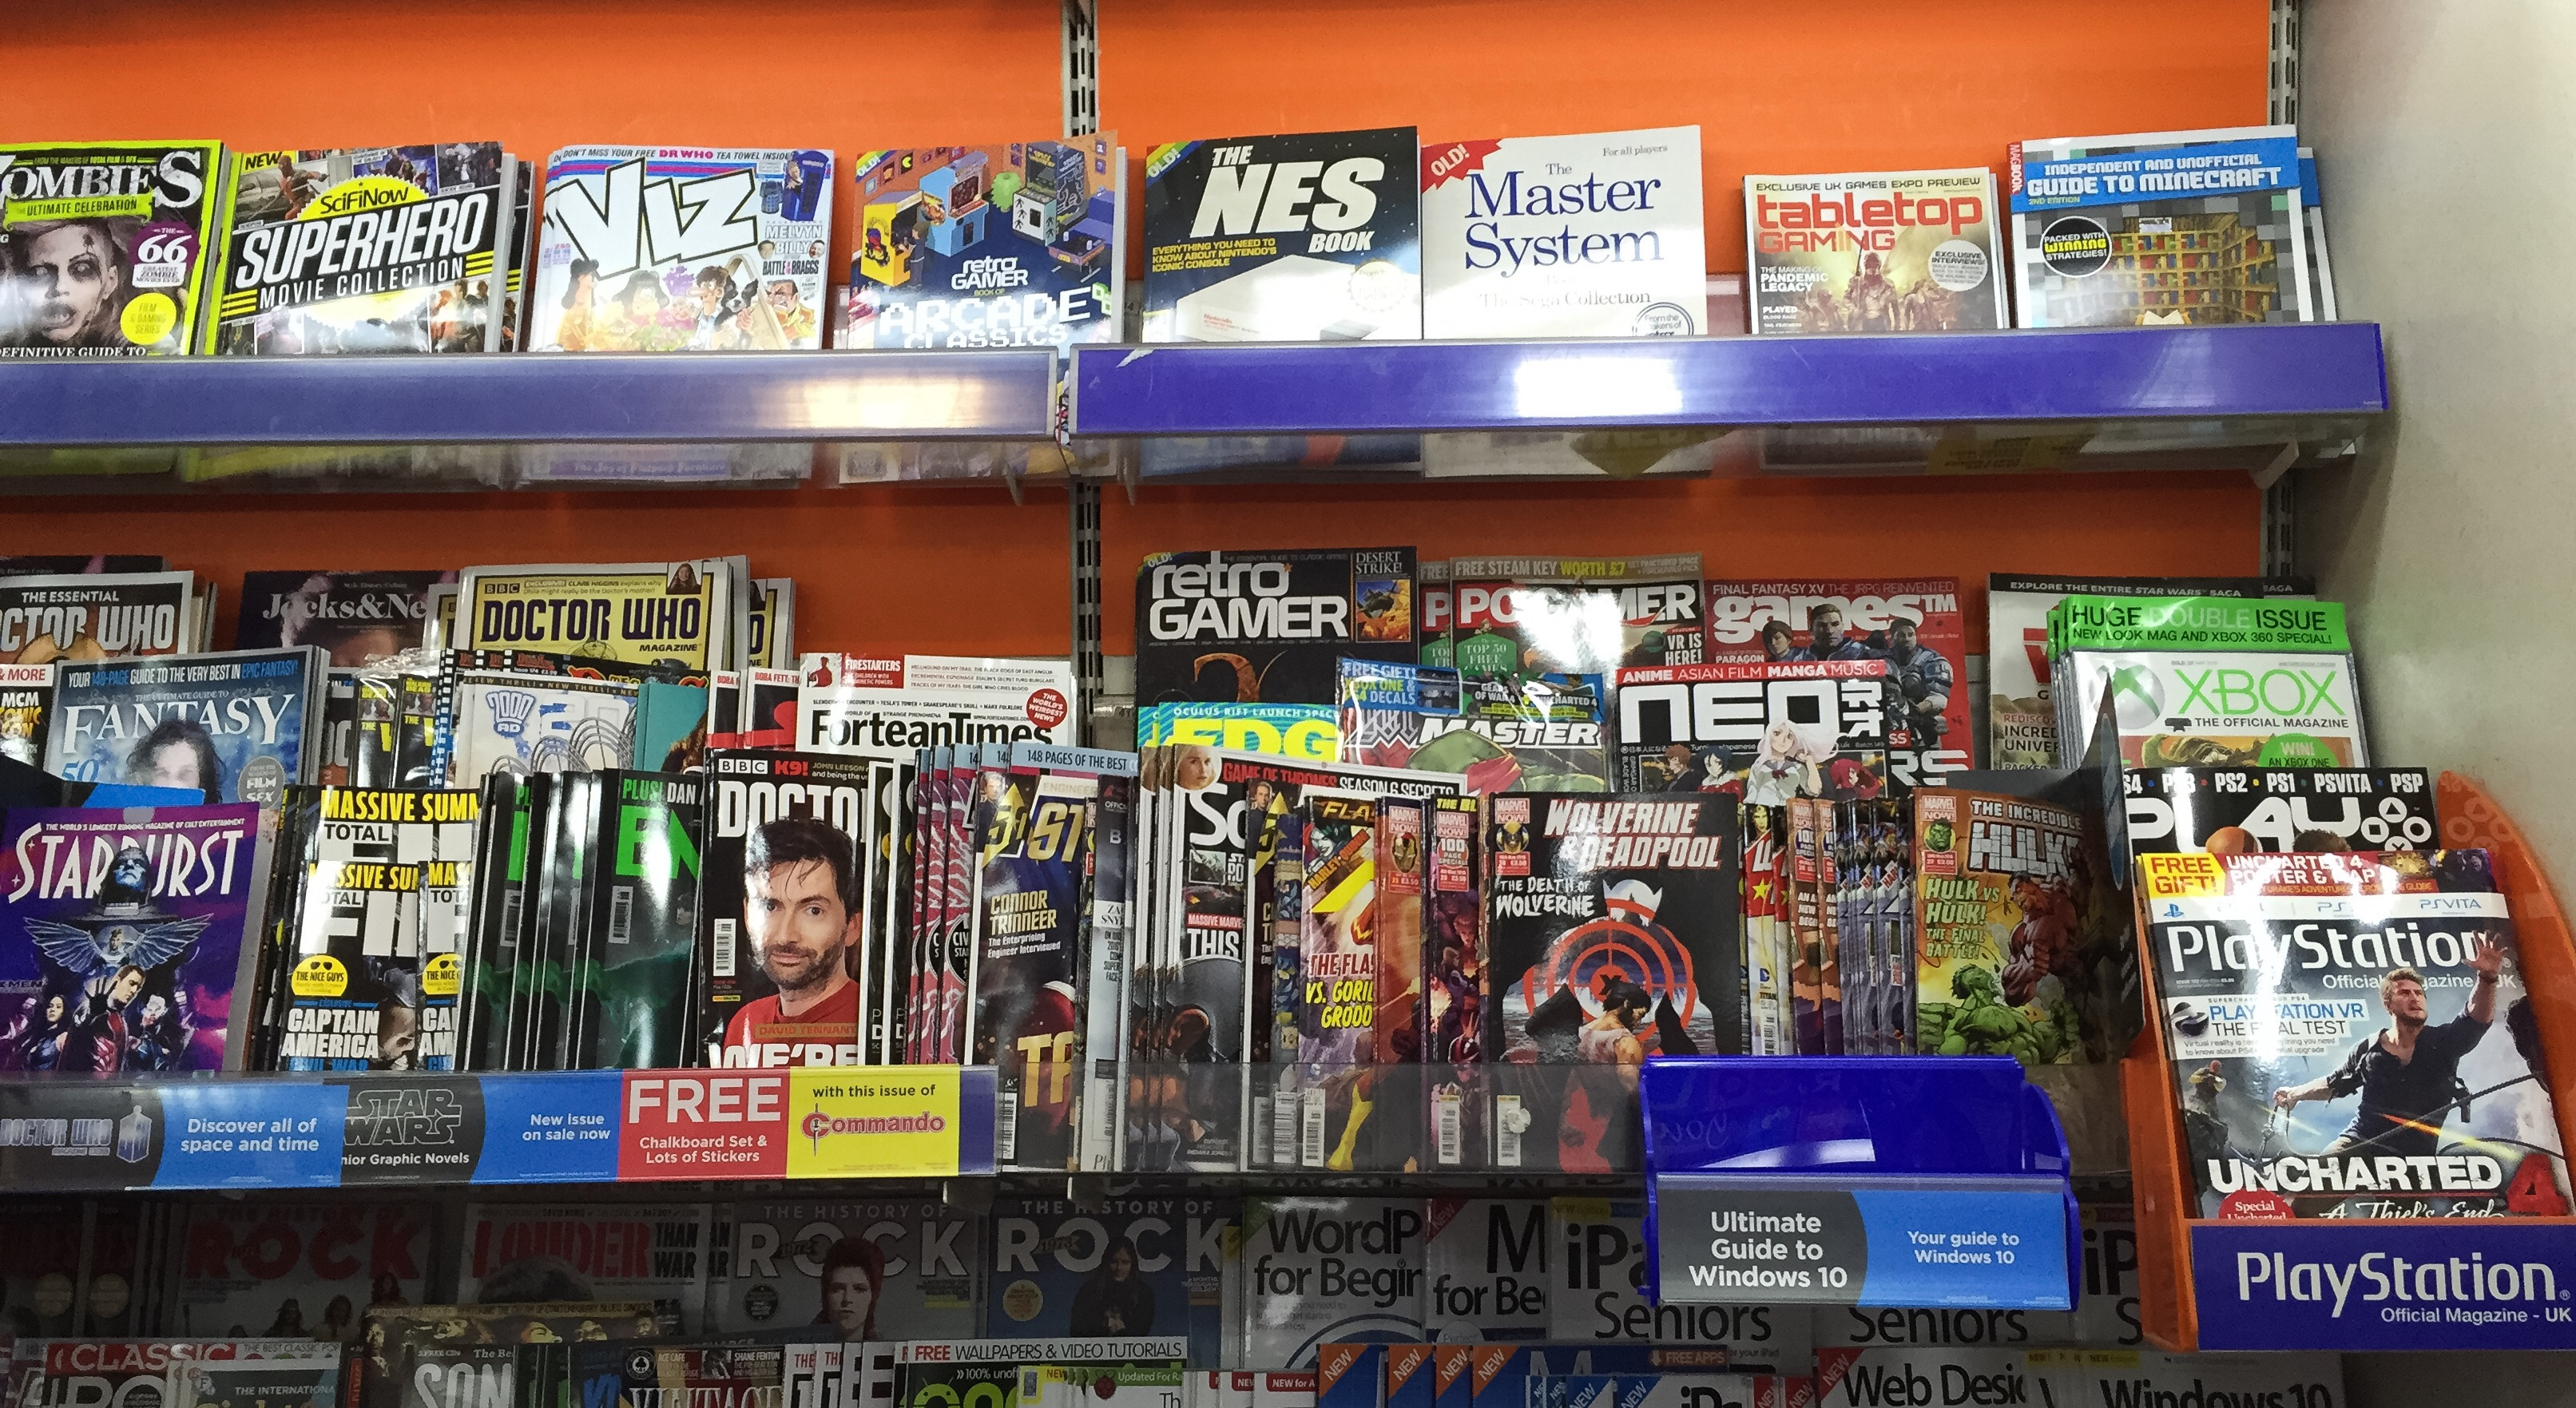 WH Smiths Lancaster's 'teen title' section, which includes 2000AD, Panini and Titan's superhero titles and Commando